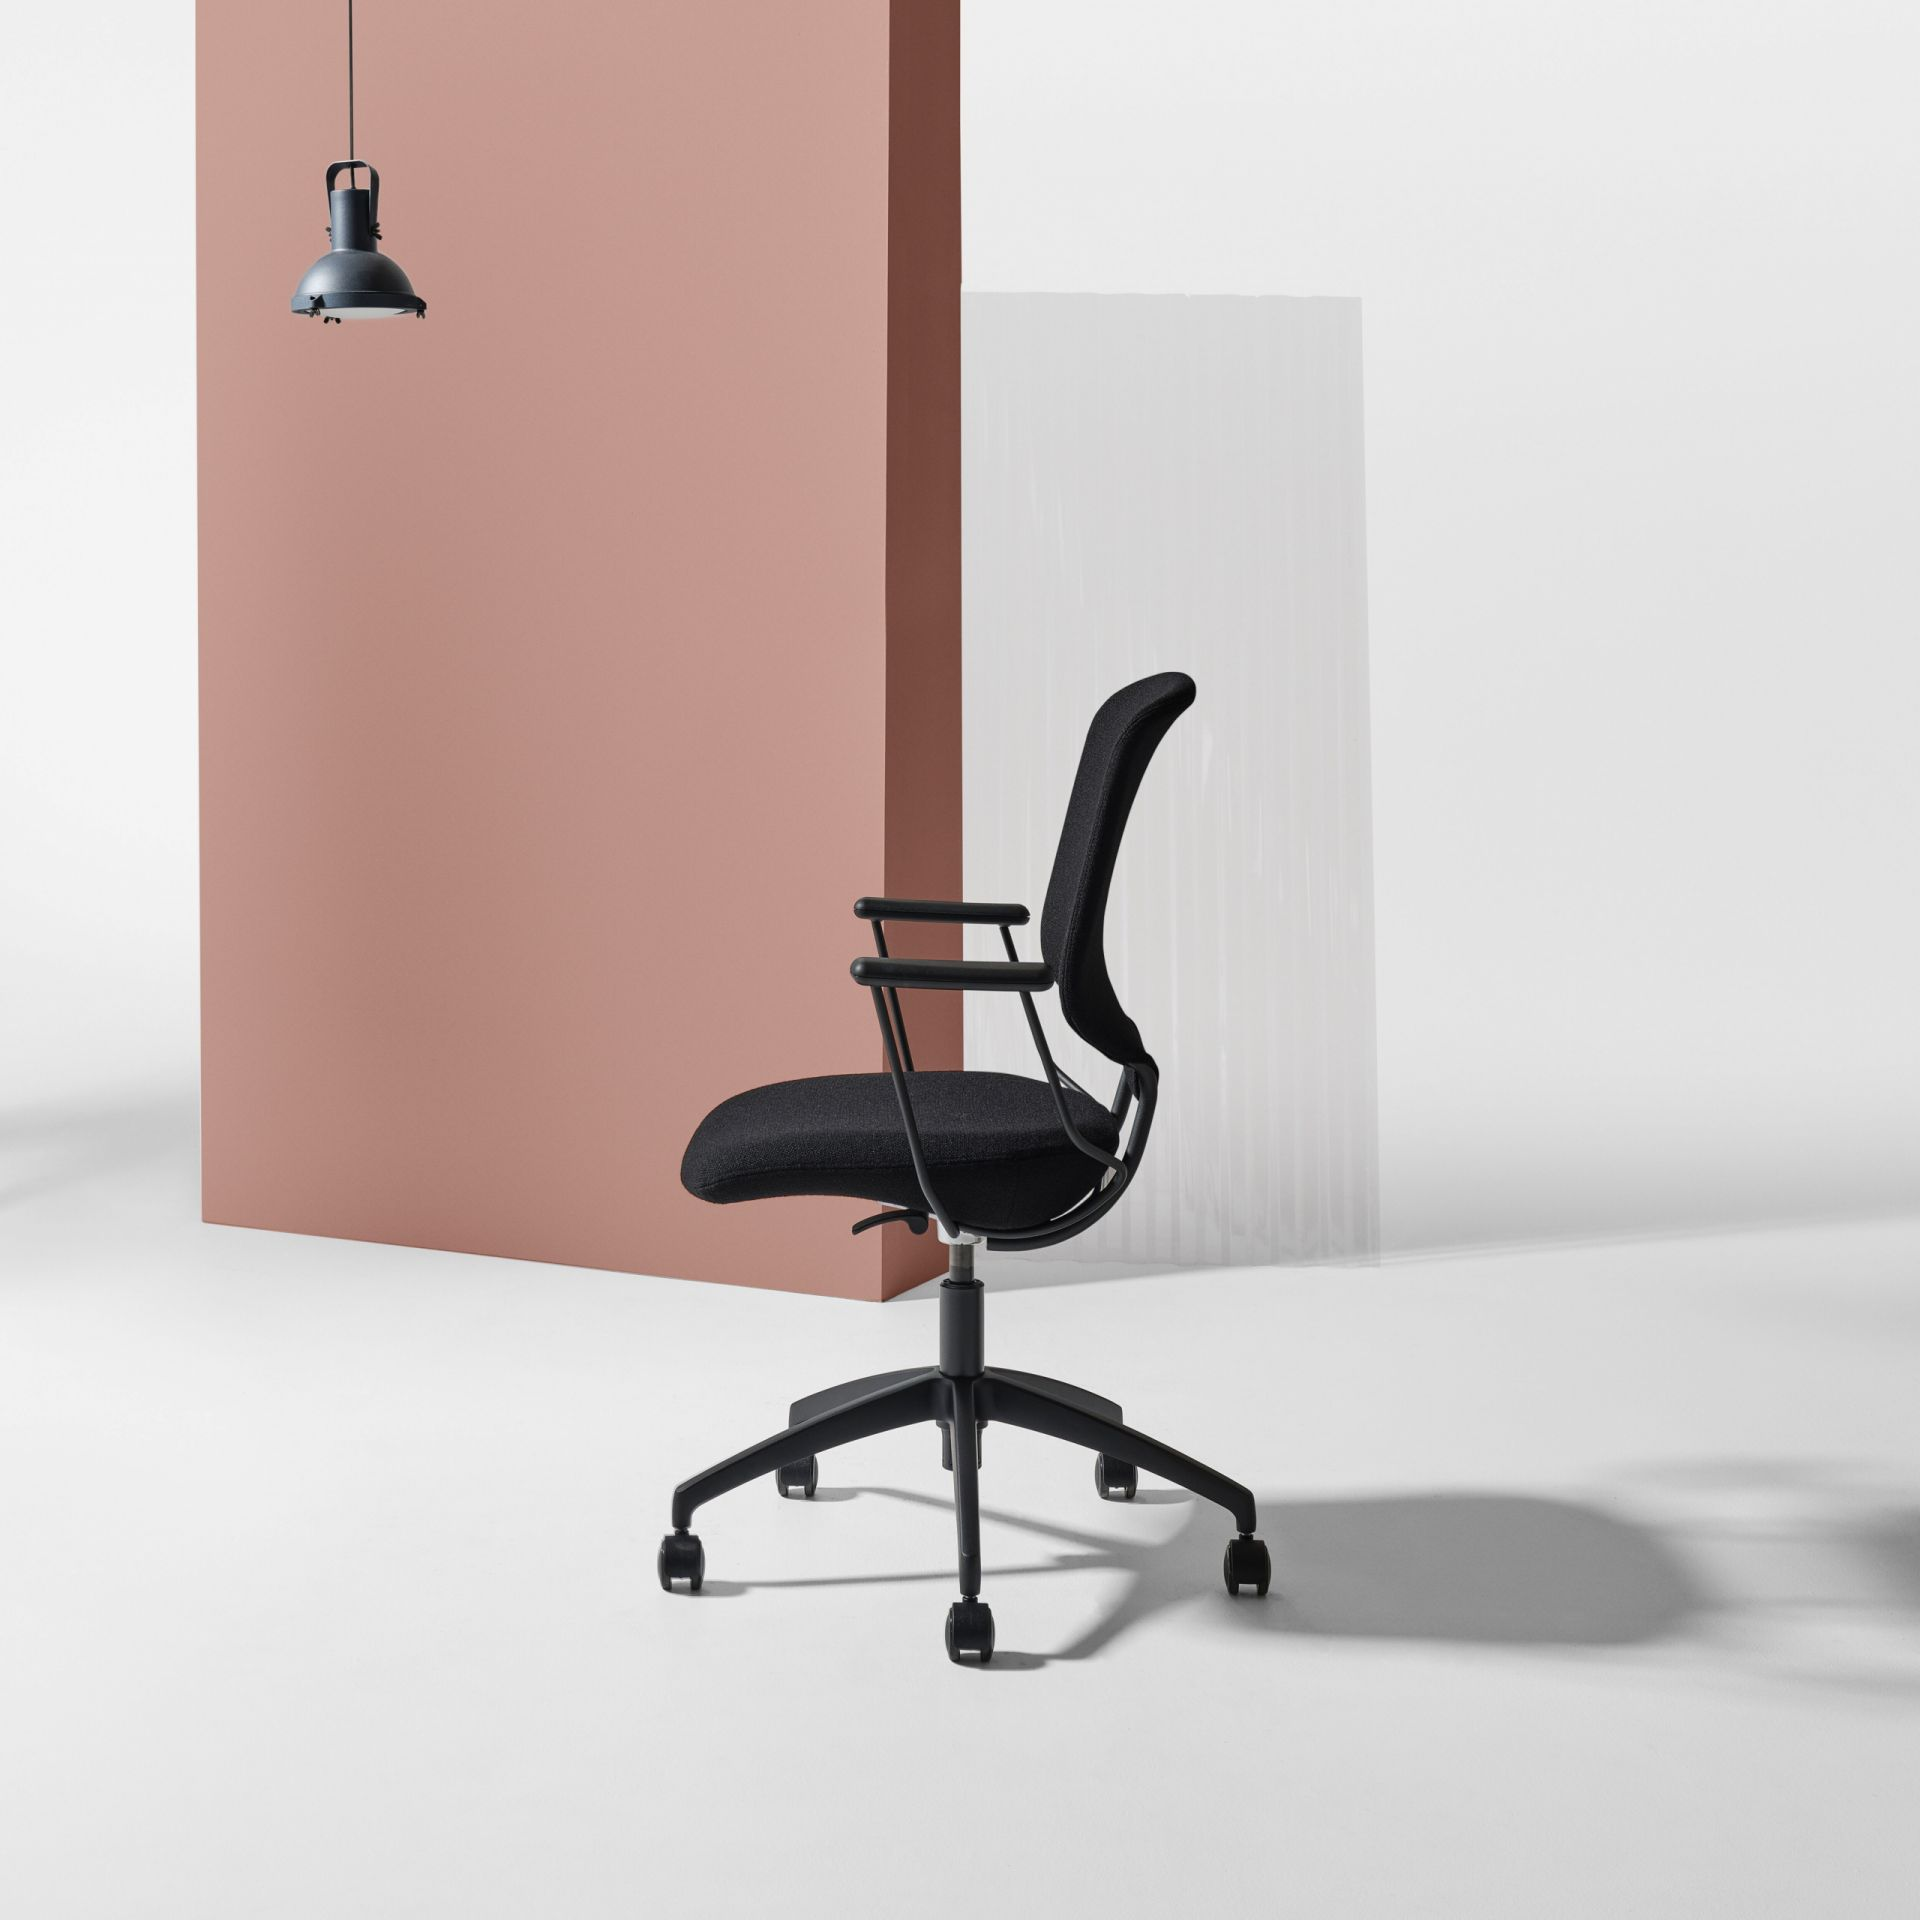 Savo Invite Invite meeting chair product image 2